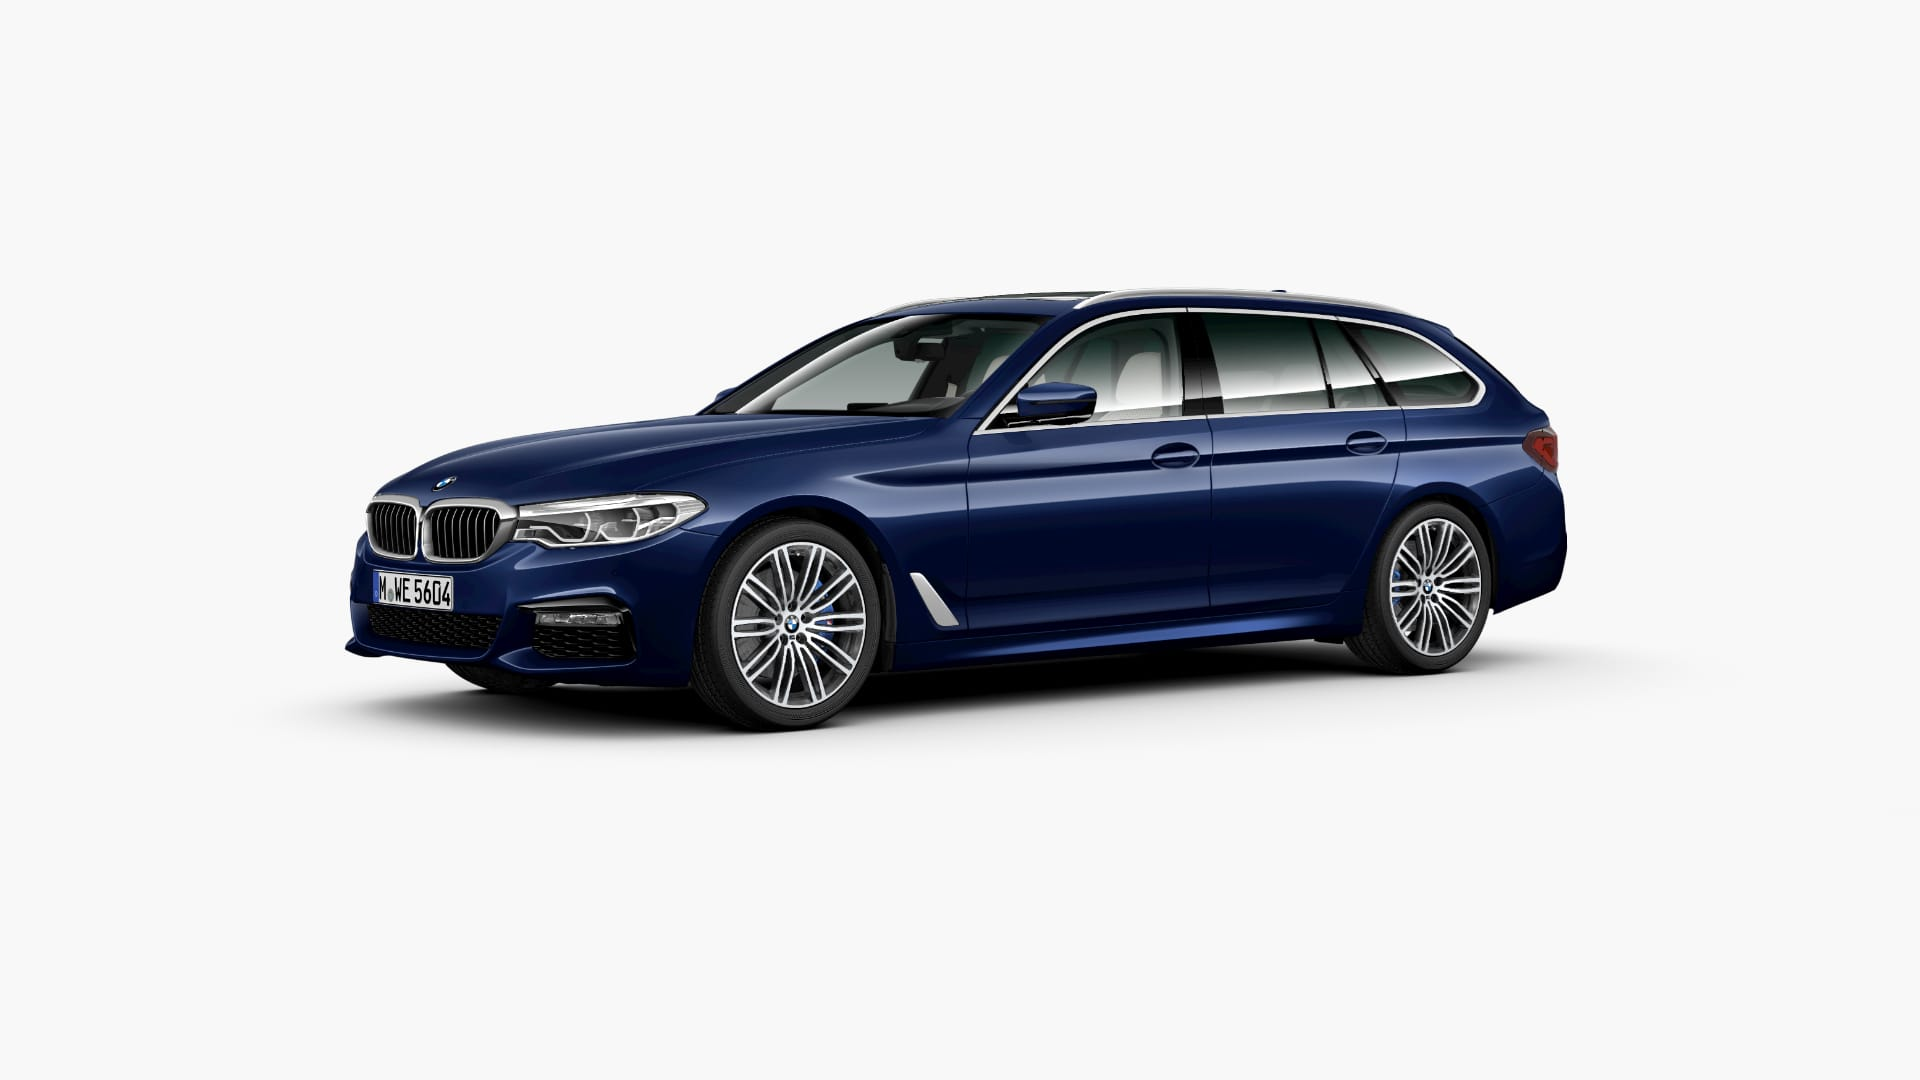 The Bmw 5 Series Touring